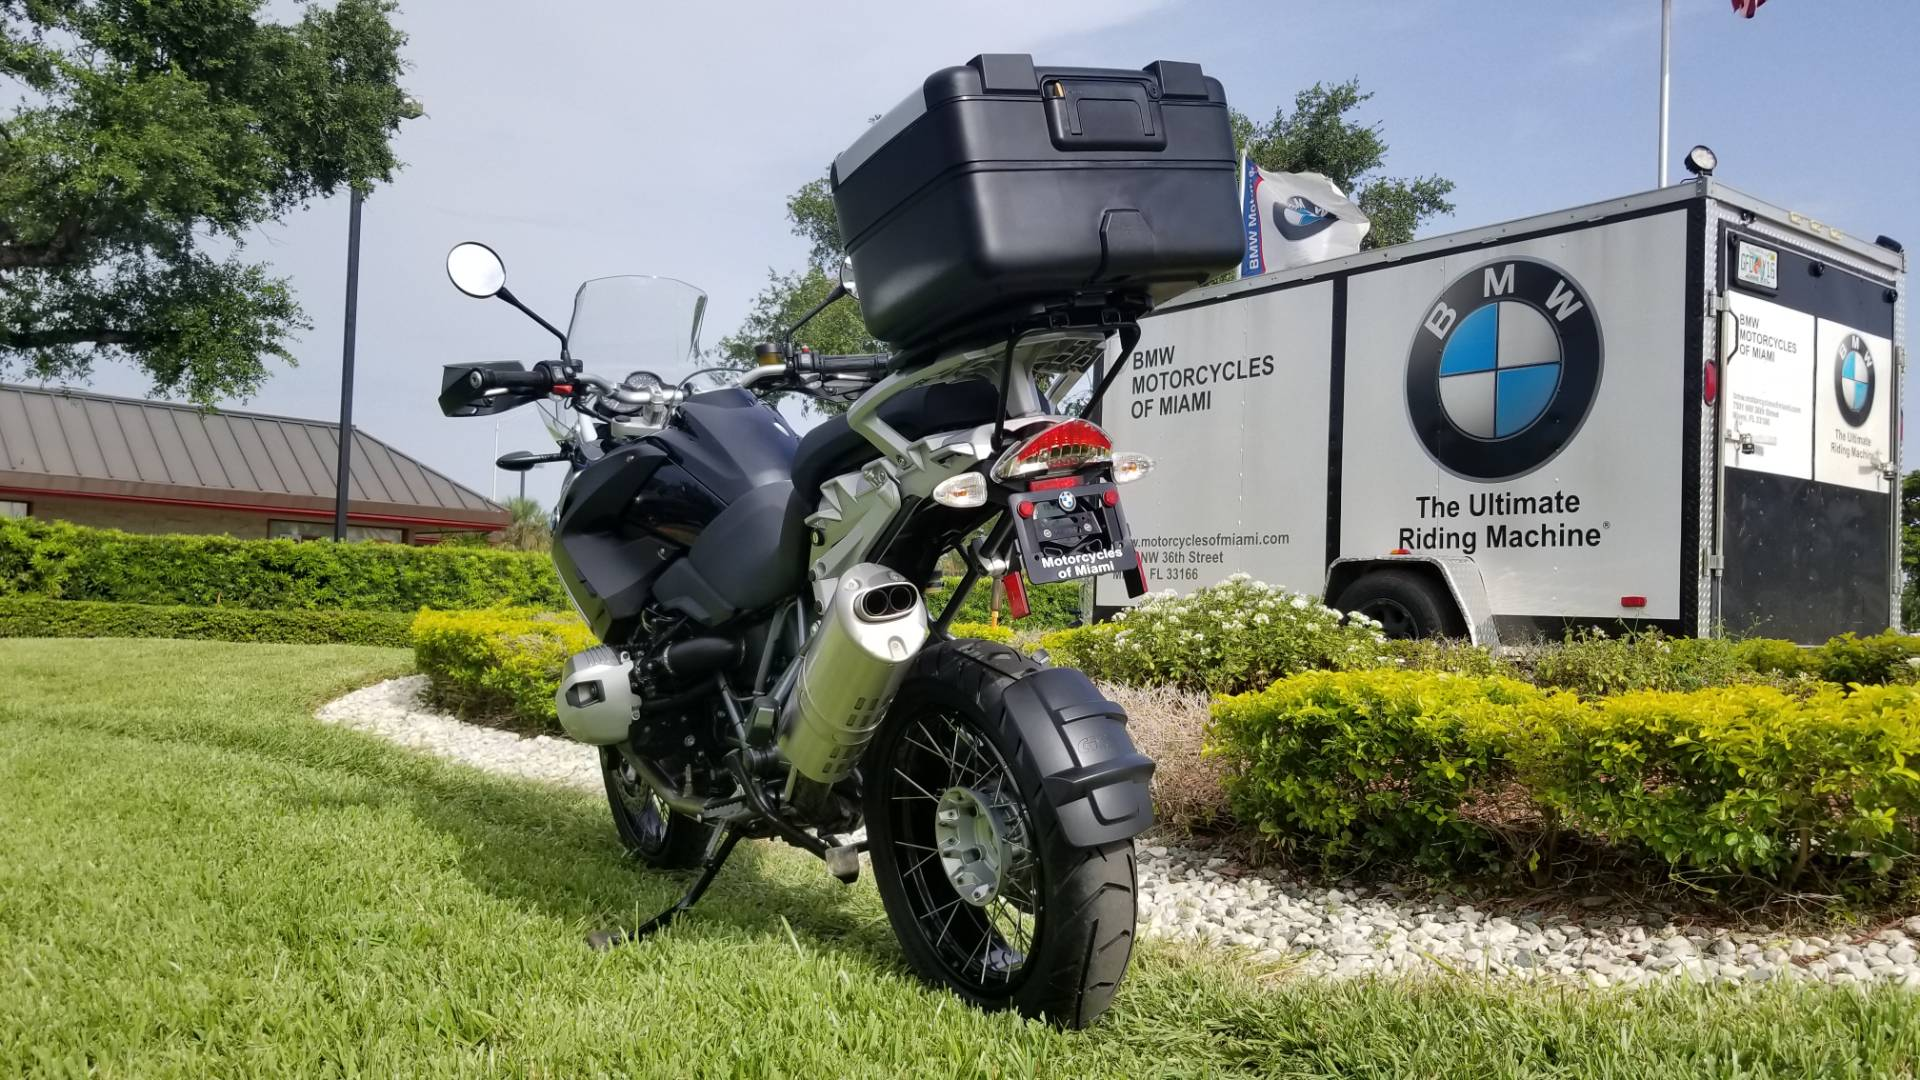 Used 2011 BMW R 1200 GS For Sale, Pre Owned BMW R 1200GS For Sale, Pre-Owned BMW Motorcycle R1200GS, BMW Motorcycle, GS, BMW - Photo 11